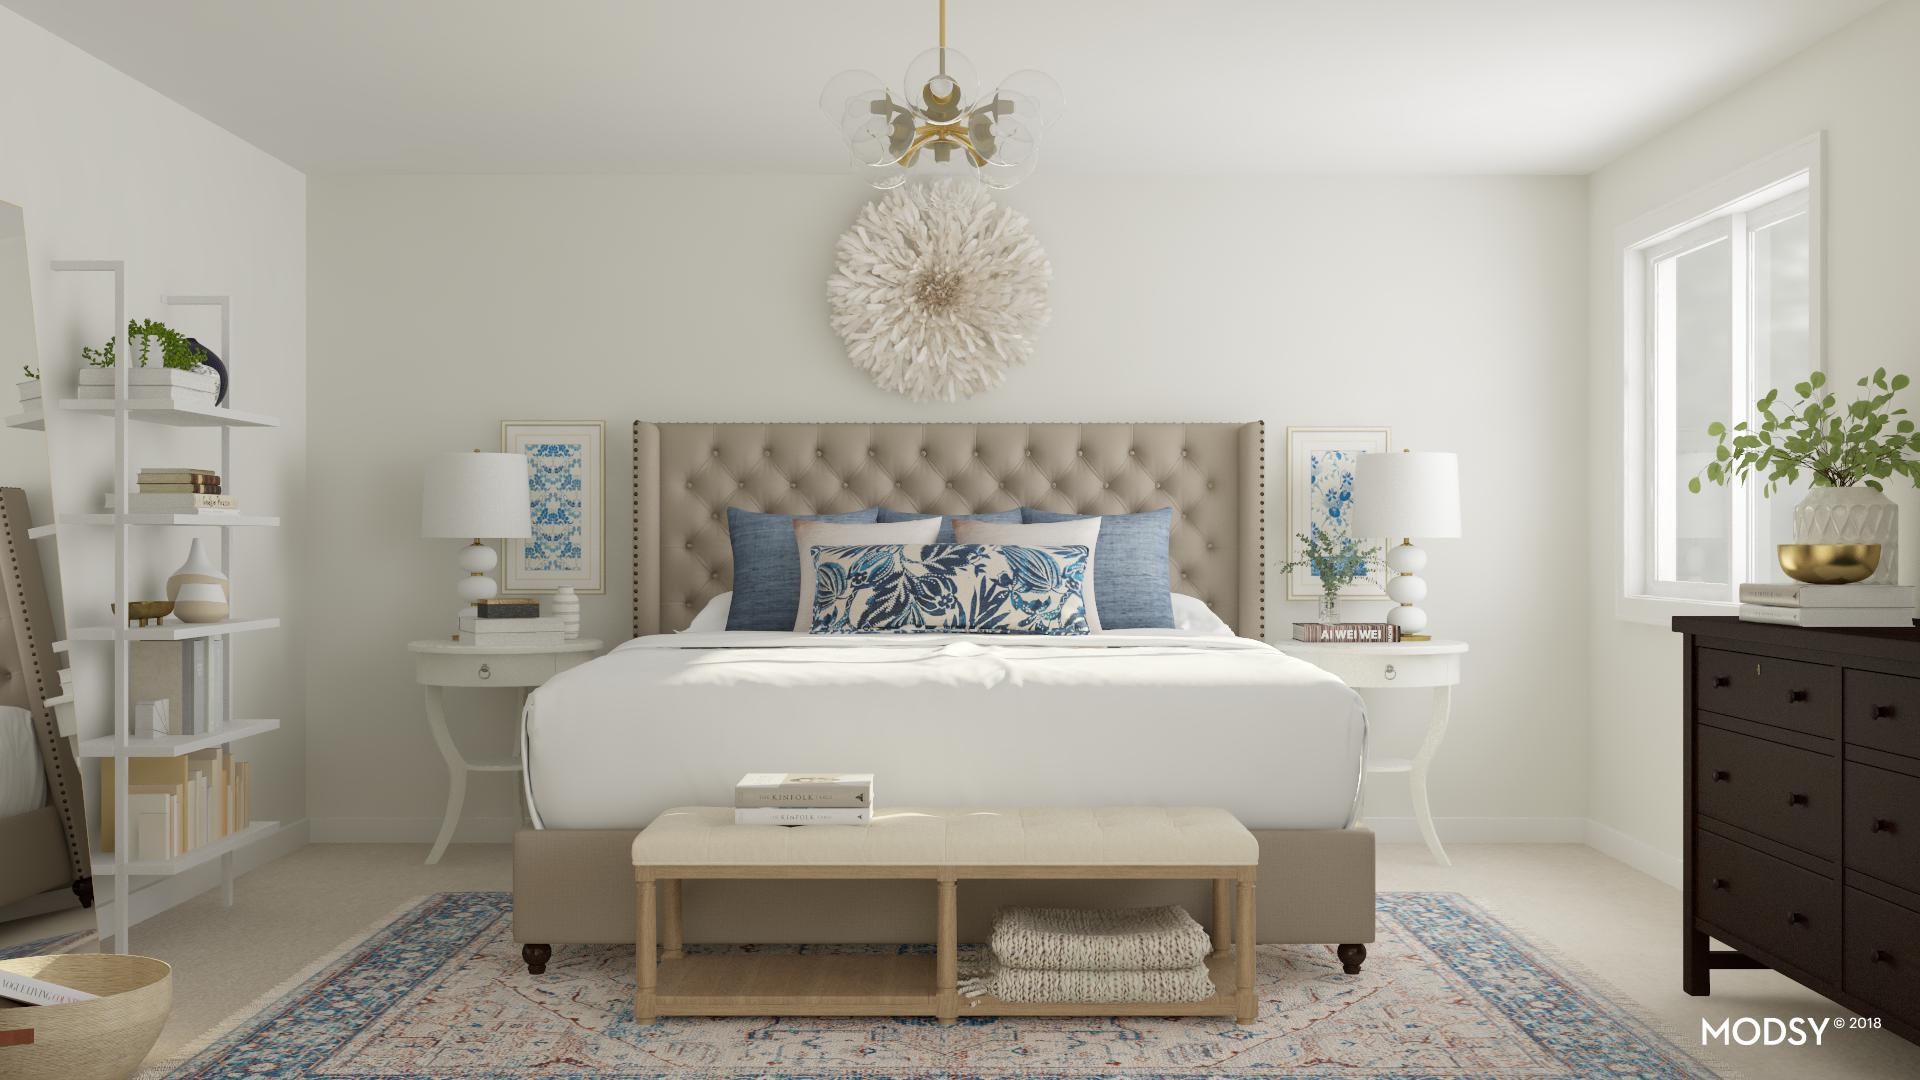 See 9 Gorgeous Master Bedroom Design Ideas With The Virtual 3 D Service Modsy